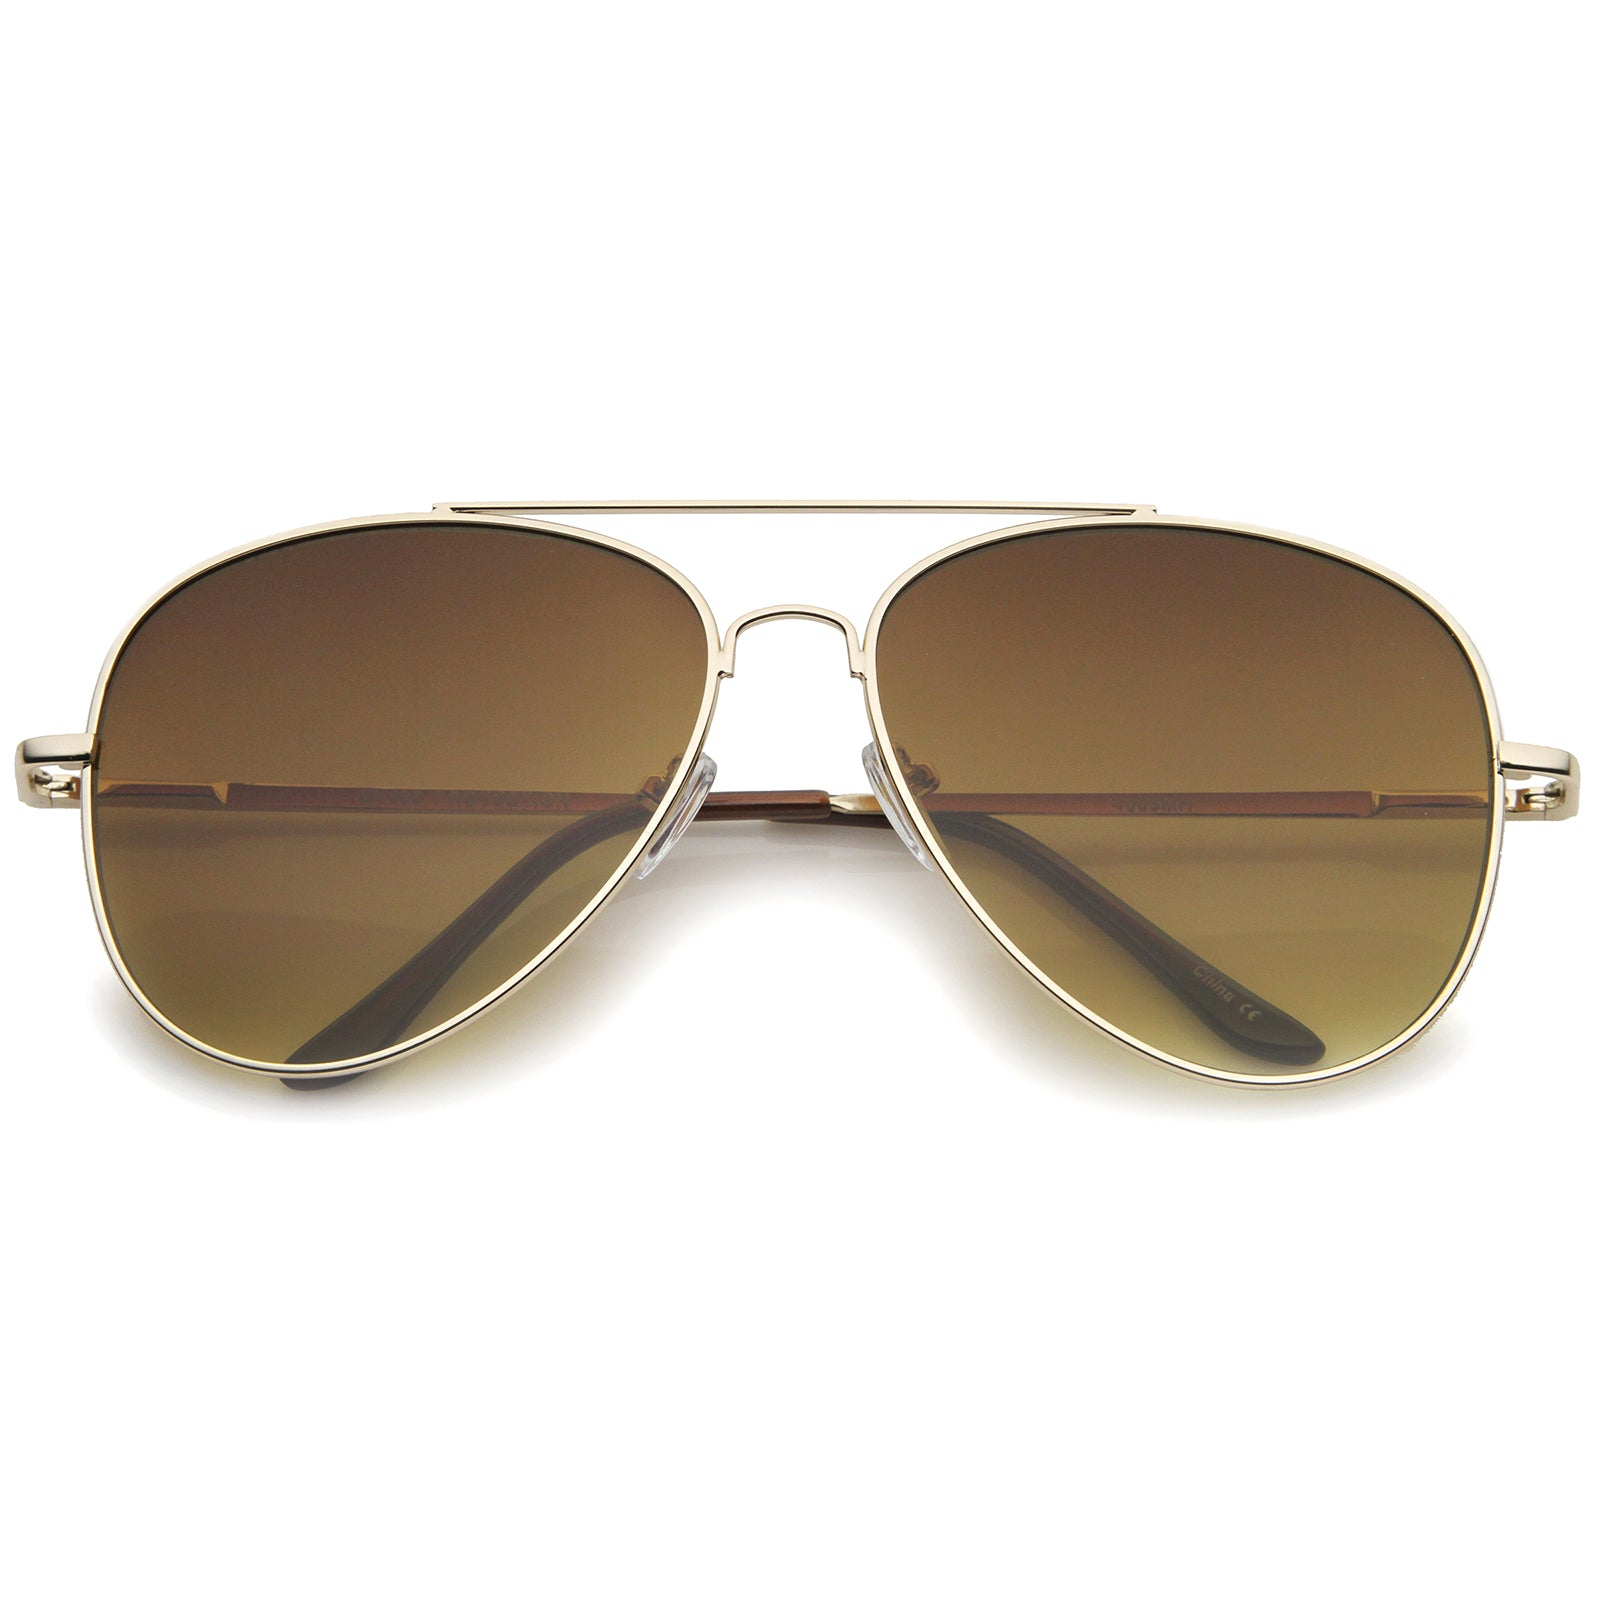 Large Classic Full Metal Teardrop Flat Lens Aviator Sunglasses 60mm - sunglass.la - 6